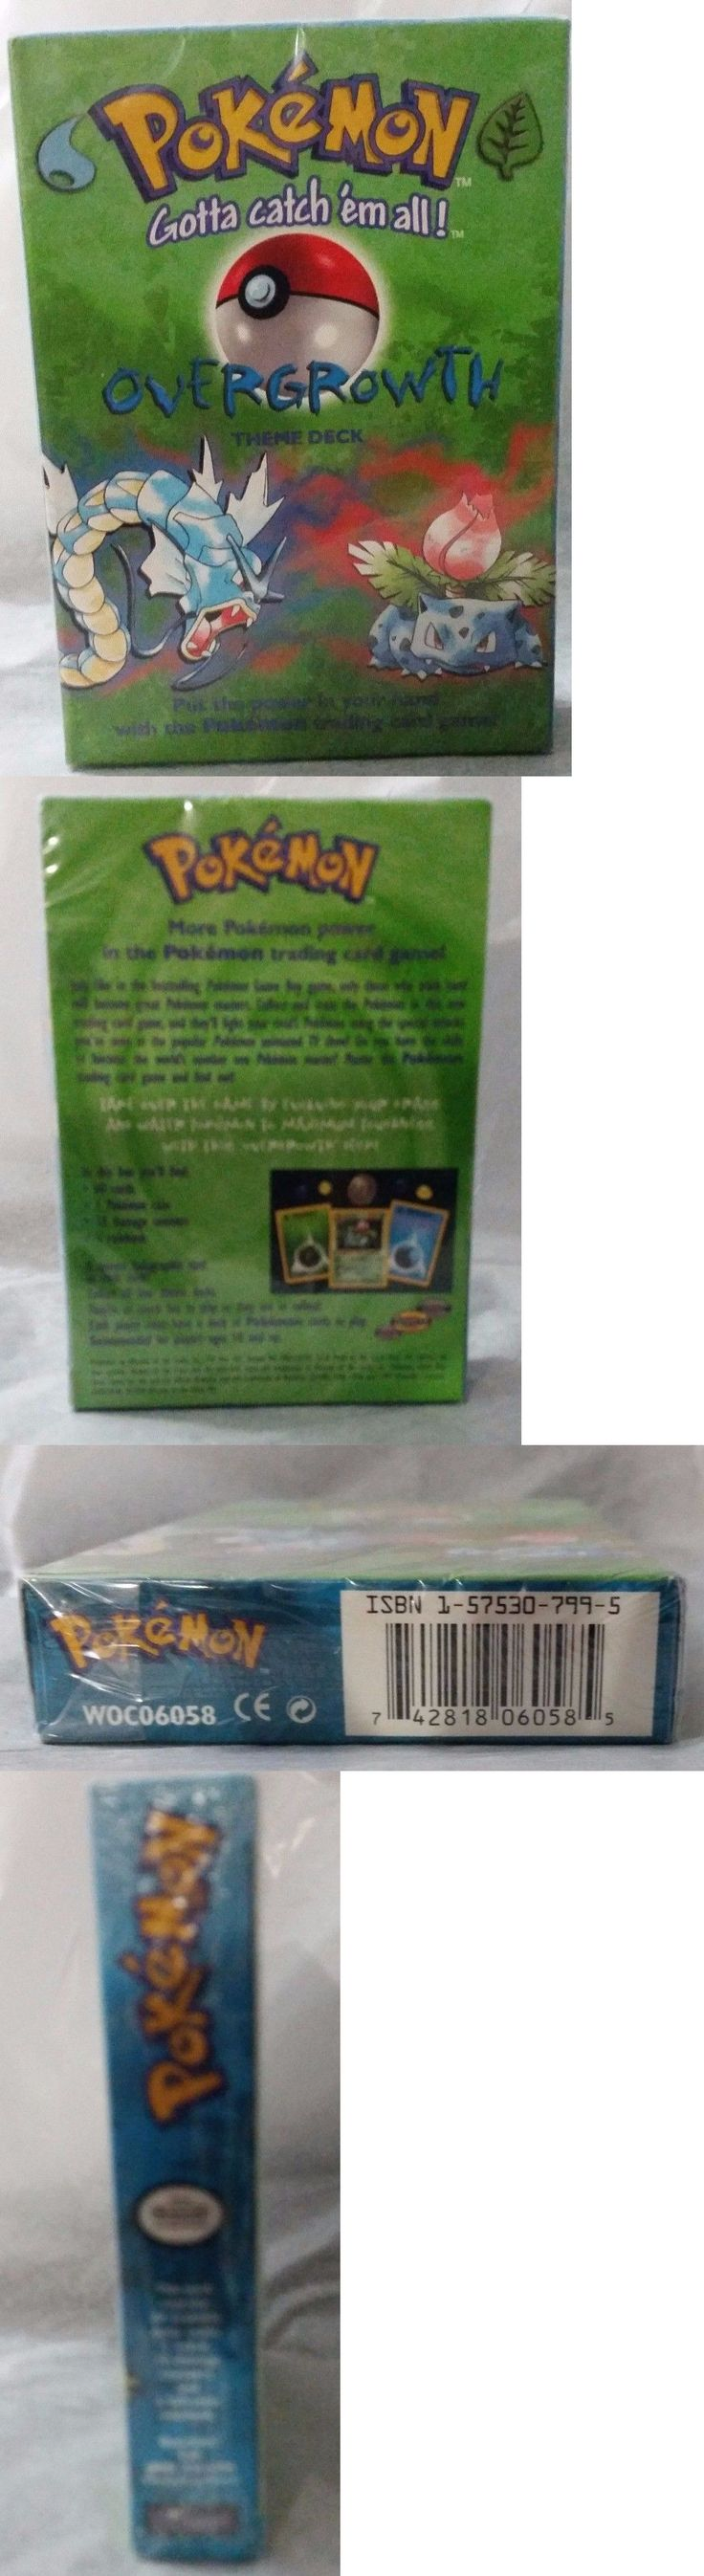 Pok mon Sealed Decks and Kits 183467: New Pokemon Tcg Overgrowth Theme Deck Wizards Of The Coast Factory Sealed -> BUY IT NOW ONLY: $58 on eBay!